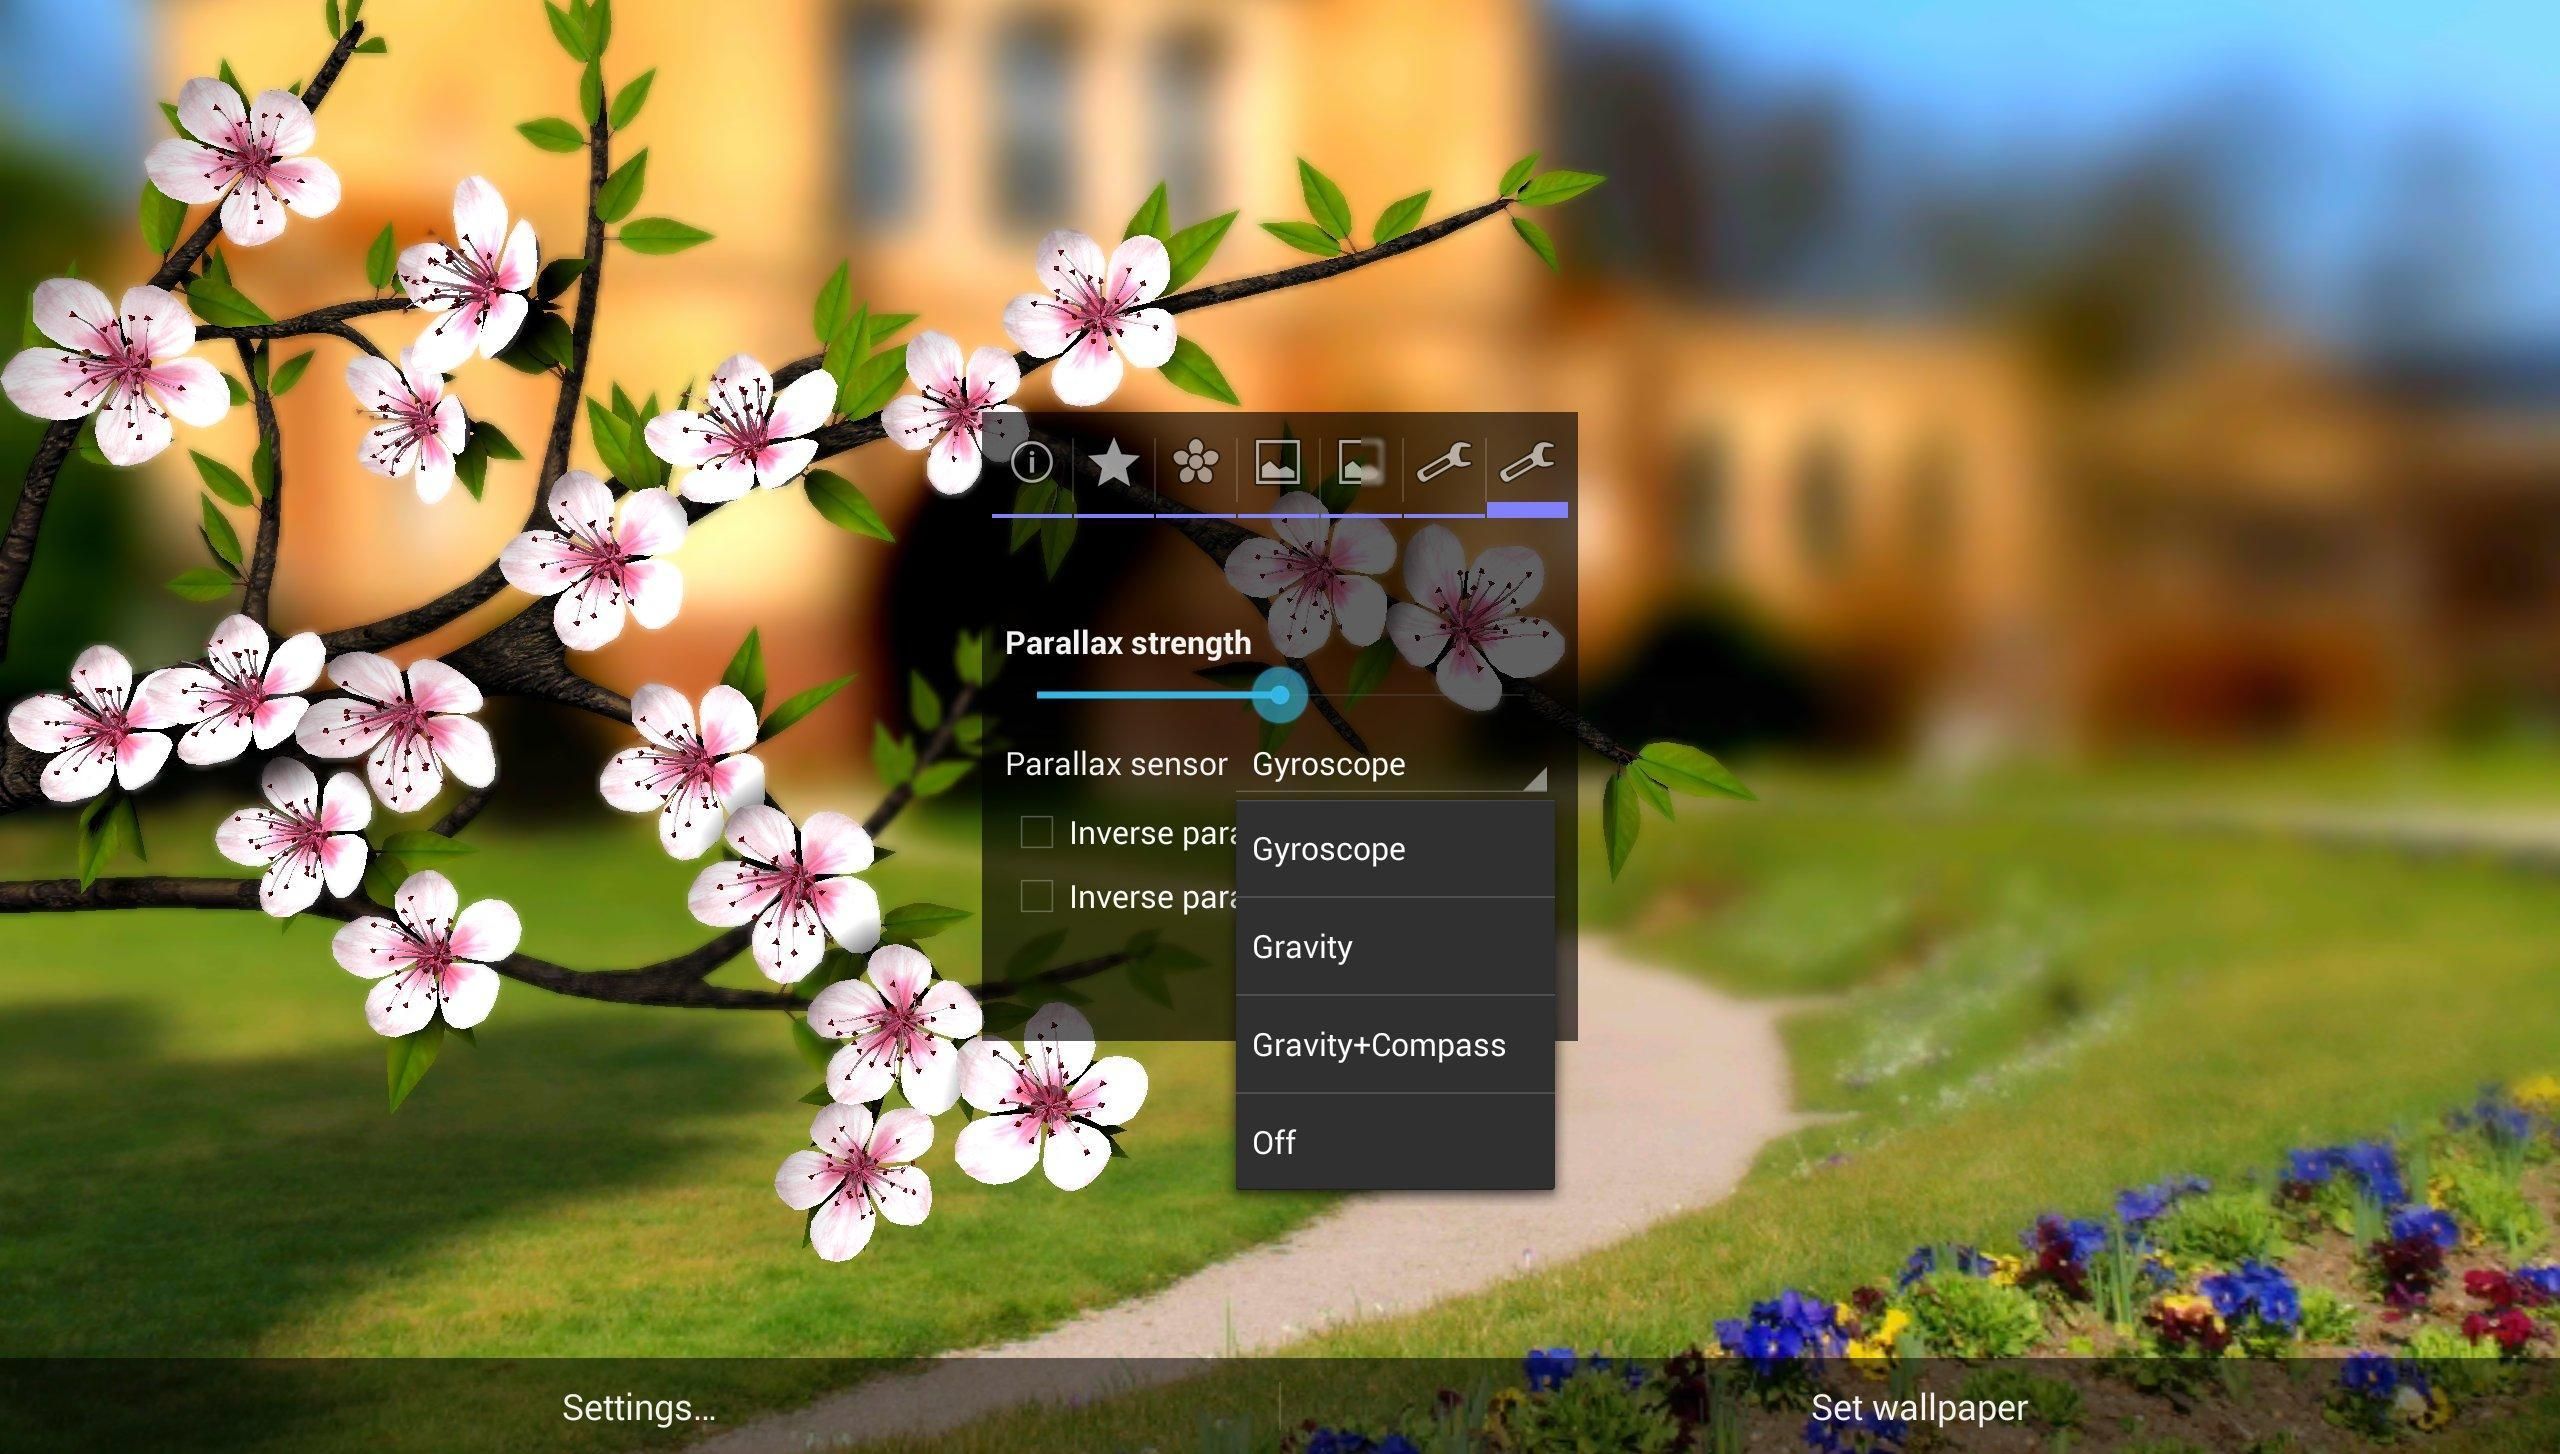 Spring Flowers 3d Parallax Hd Live Wallpaper - Flowers Healthy